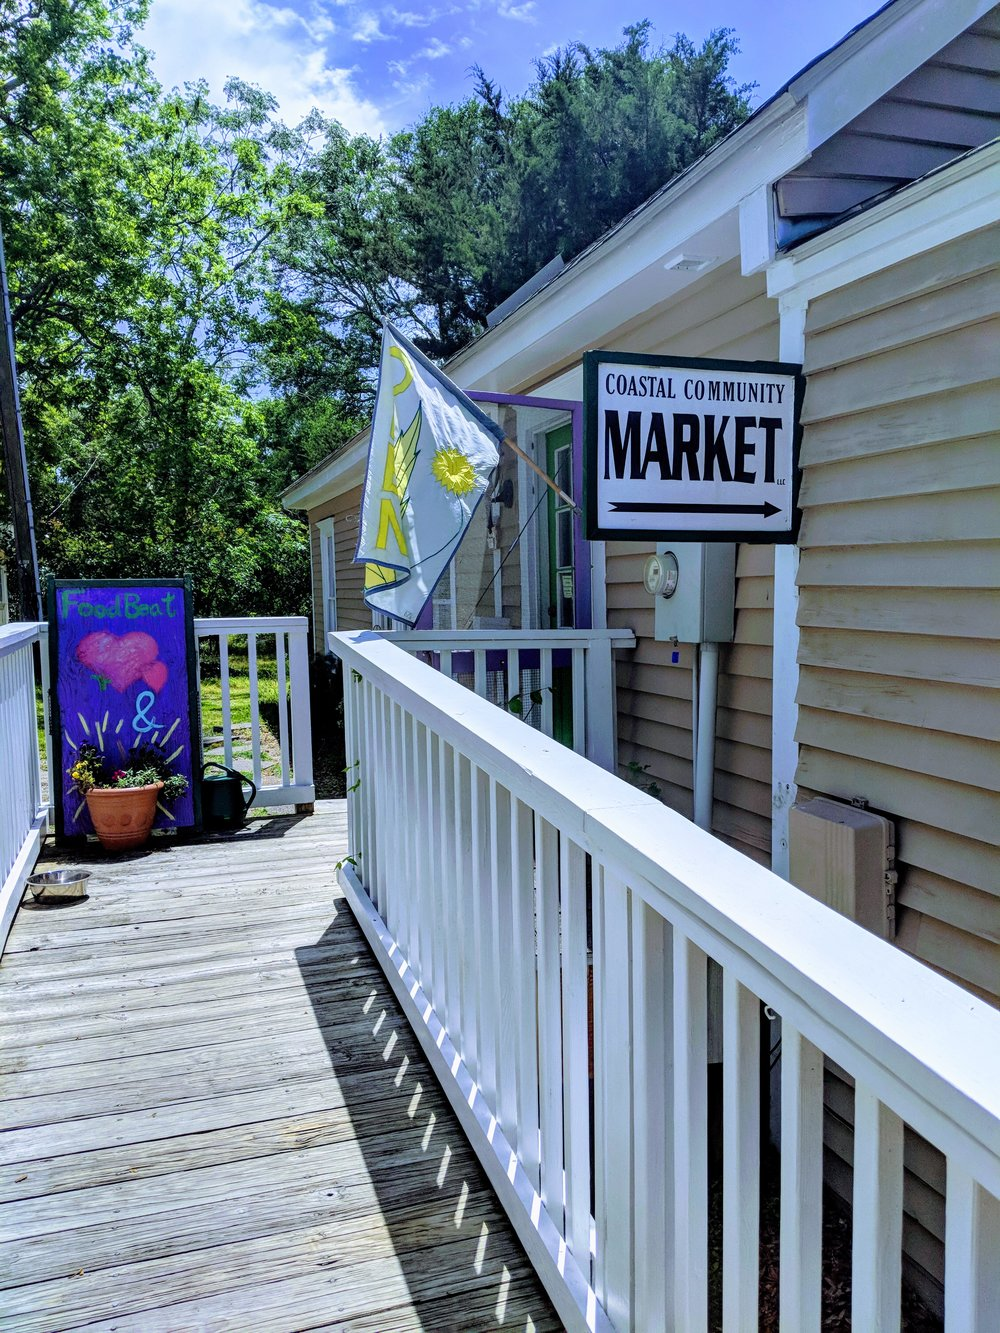 Coastal Community Market